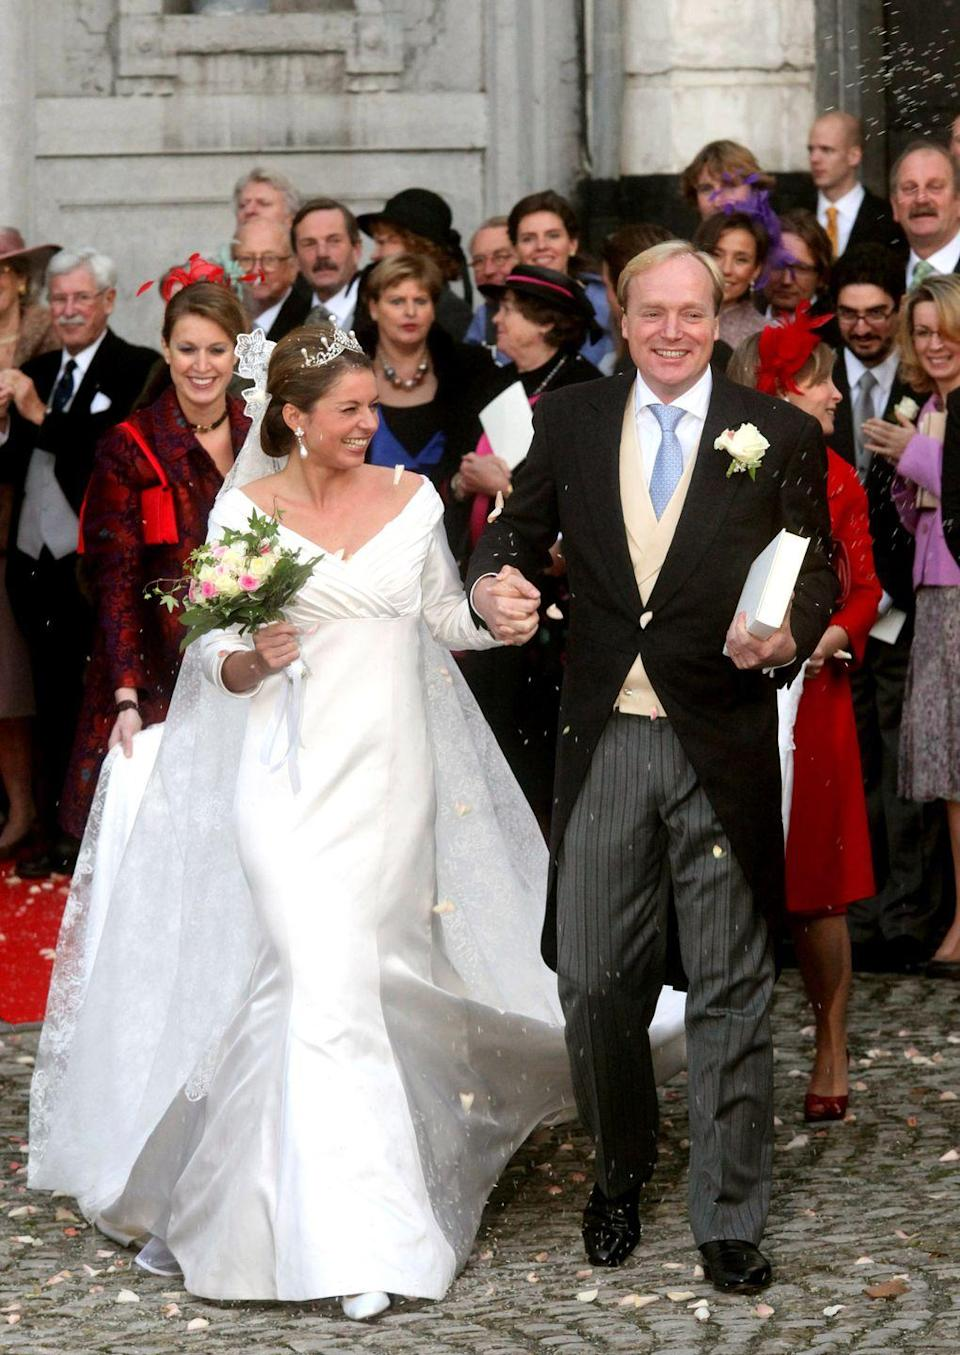 <p>Annemarie, Duchess of Parma and Piacenza married Prince Carlos of Bourbon-Parma on June 12, 2010 in Wijk bij Duurstede, Netherlands. Duchess Annemarie's mermaid-style dress highlighted a crisscrossed, ruched bodice and an elegant train.</p>